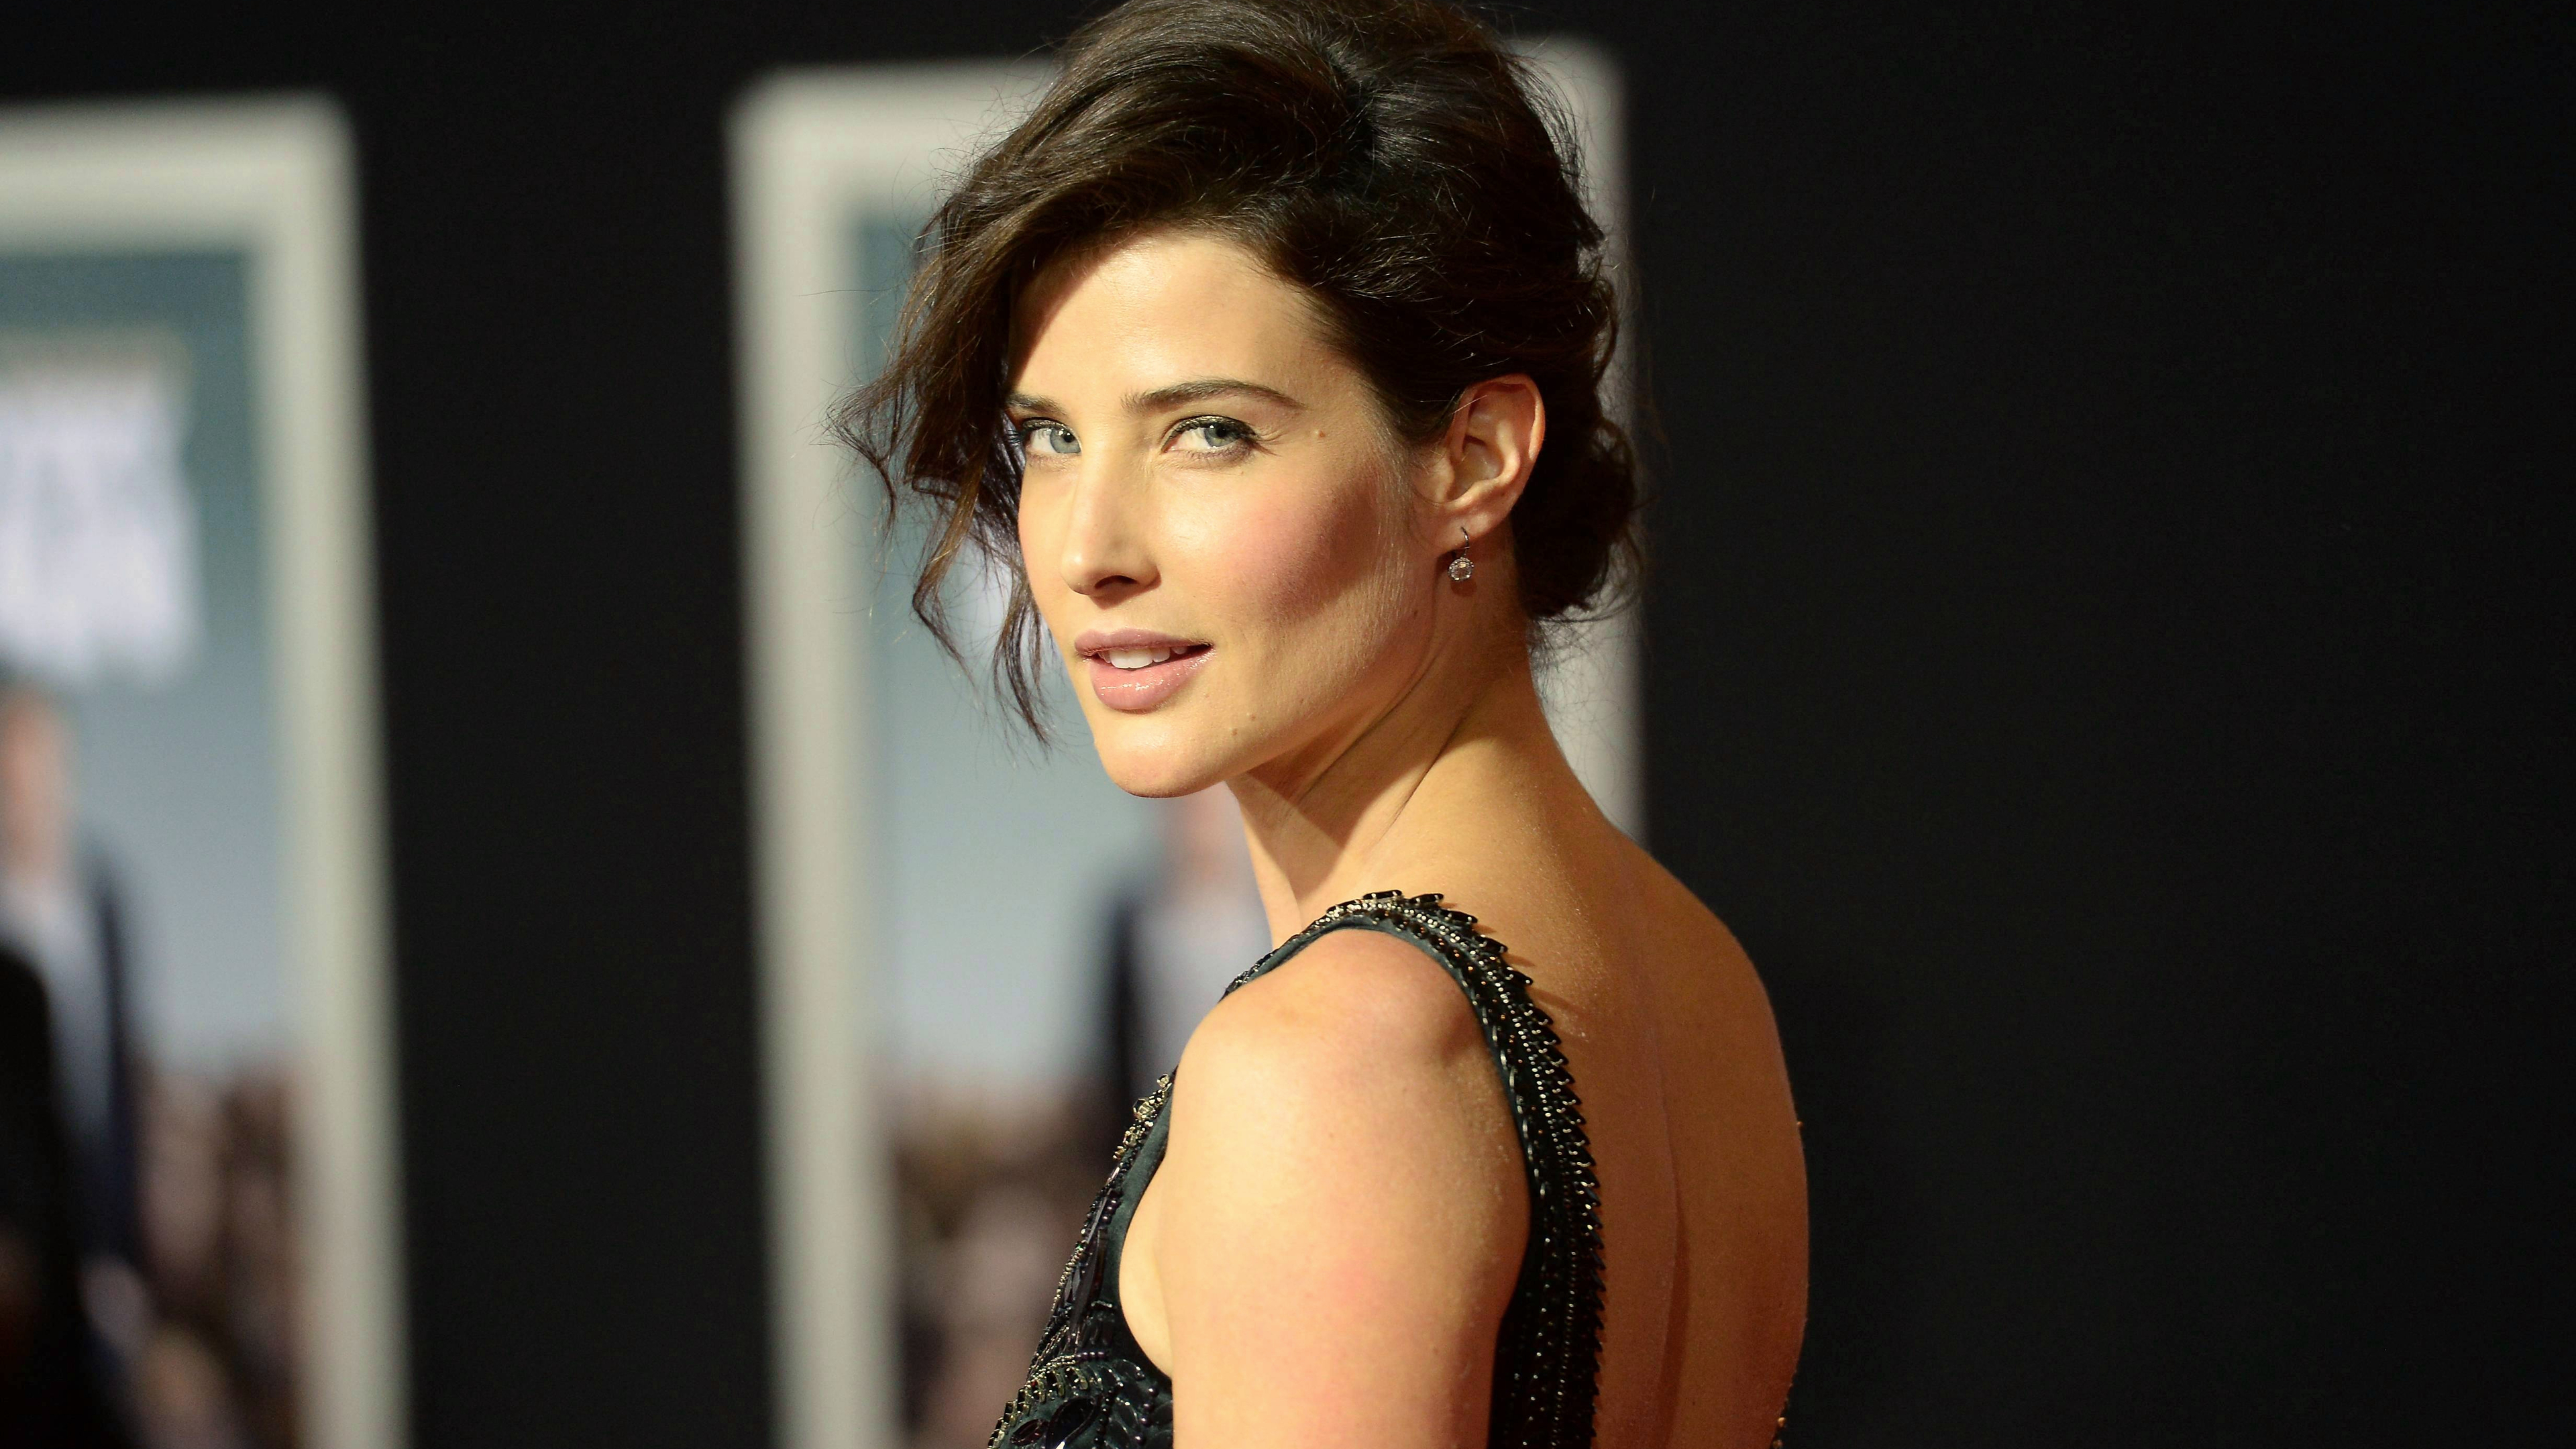 cobie smulders 5k 2019 1536863302 - Cobie Smulders 5k 2019 - hd-wallpapers, girls wallpapers, cobie smulders wallpapers, celebrities wallpapers, 5k wallpapers, 4k-wallpapers